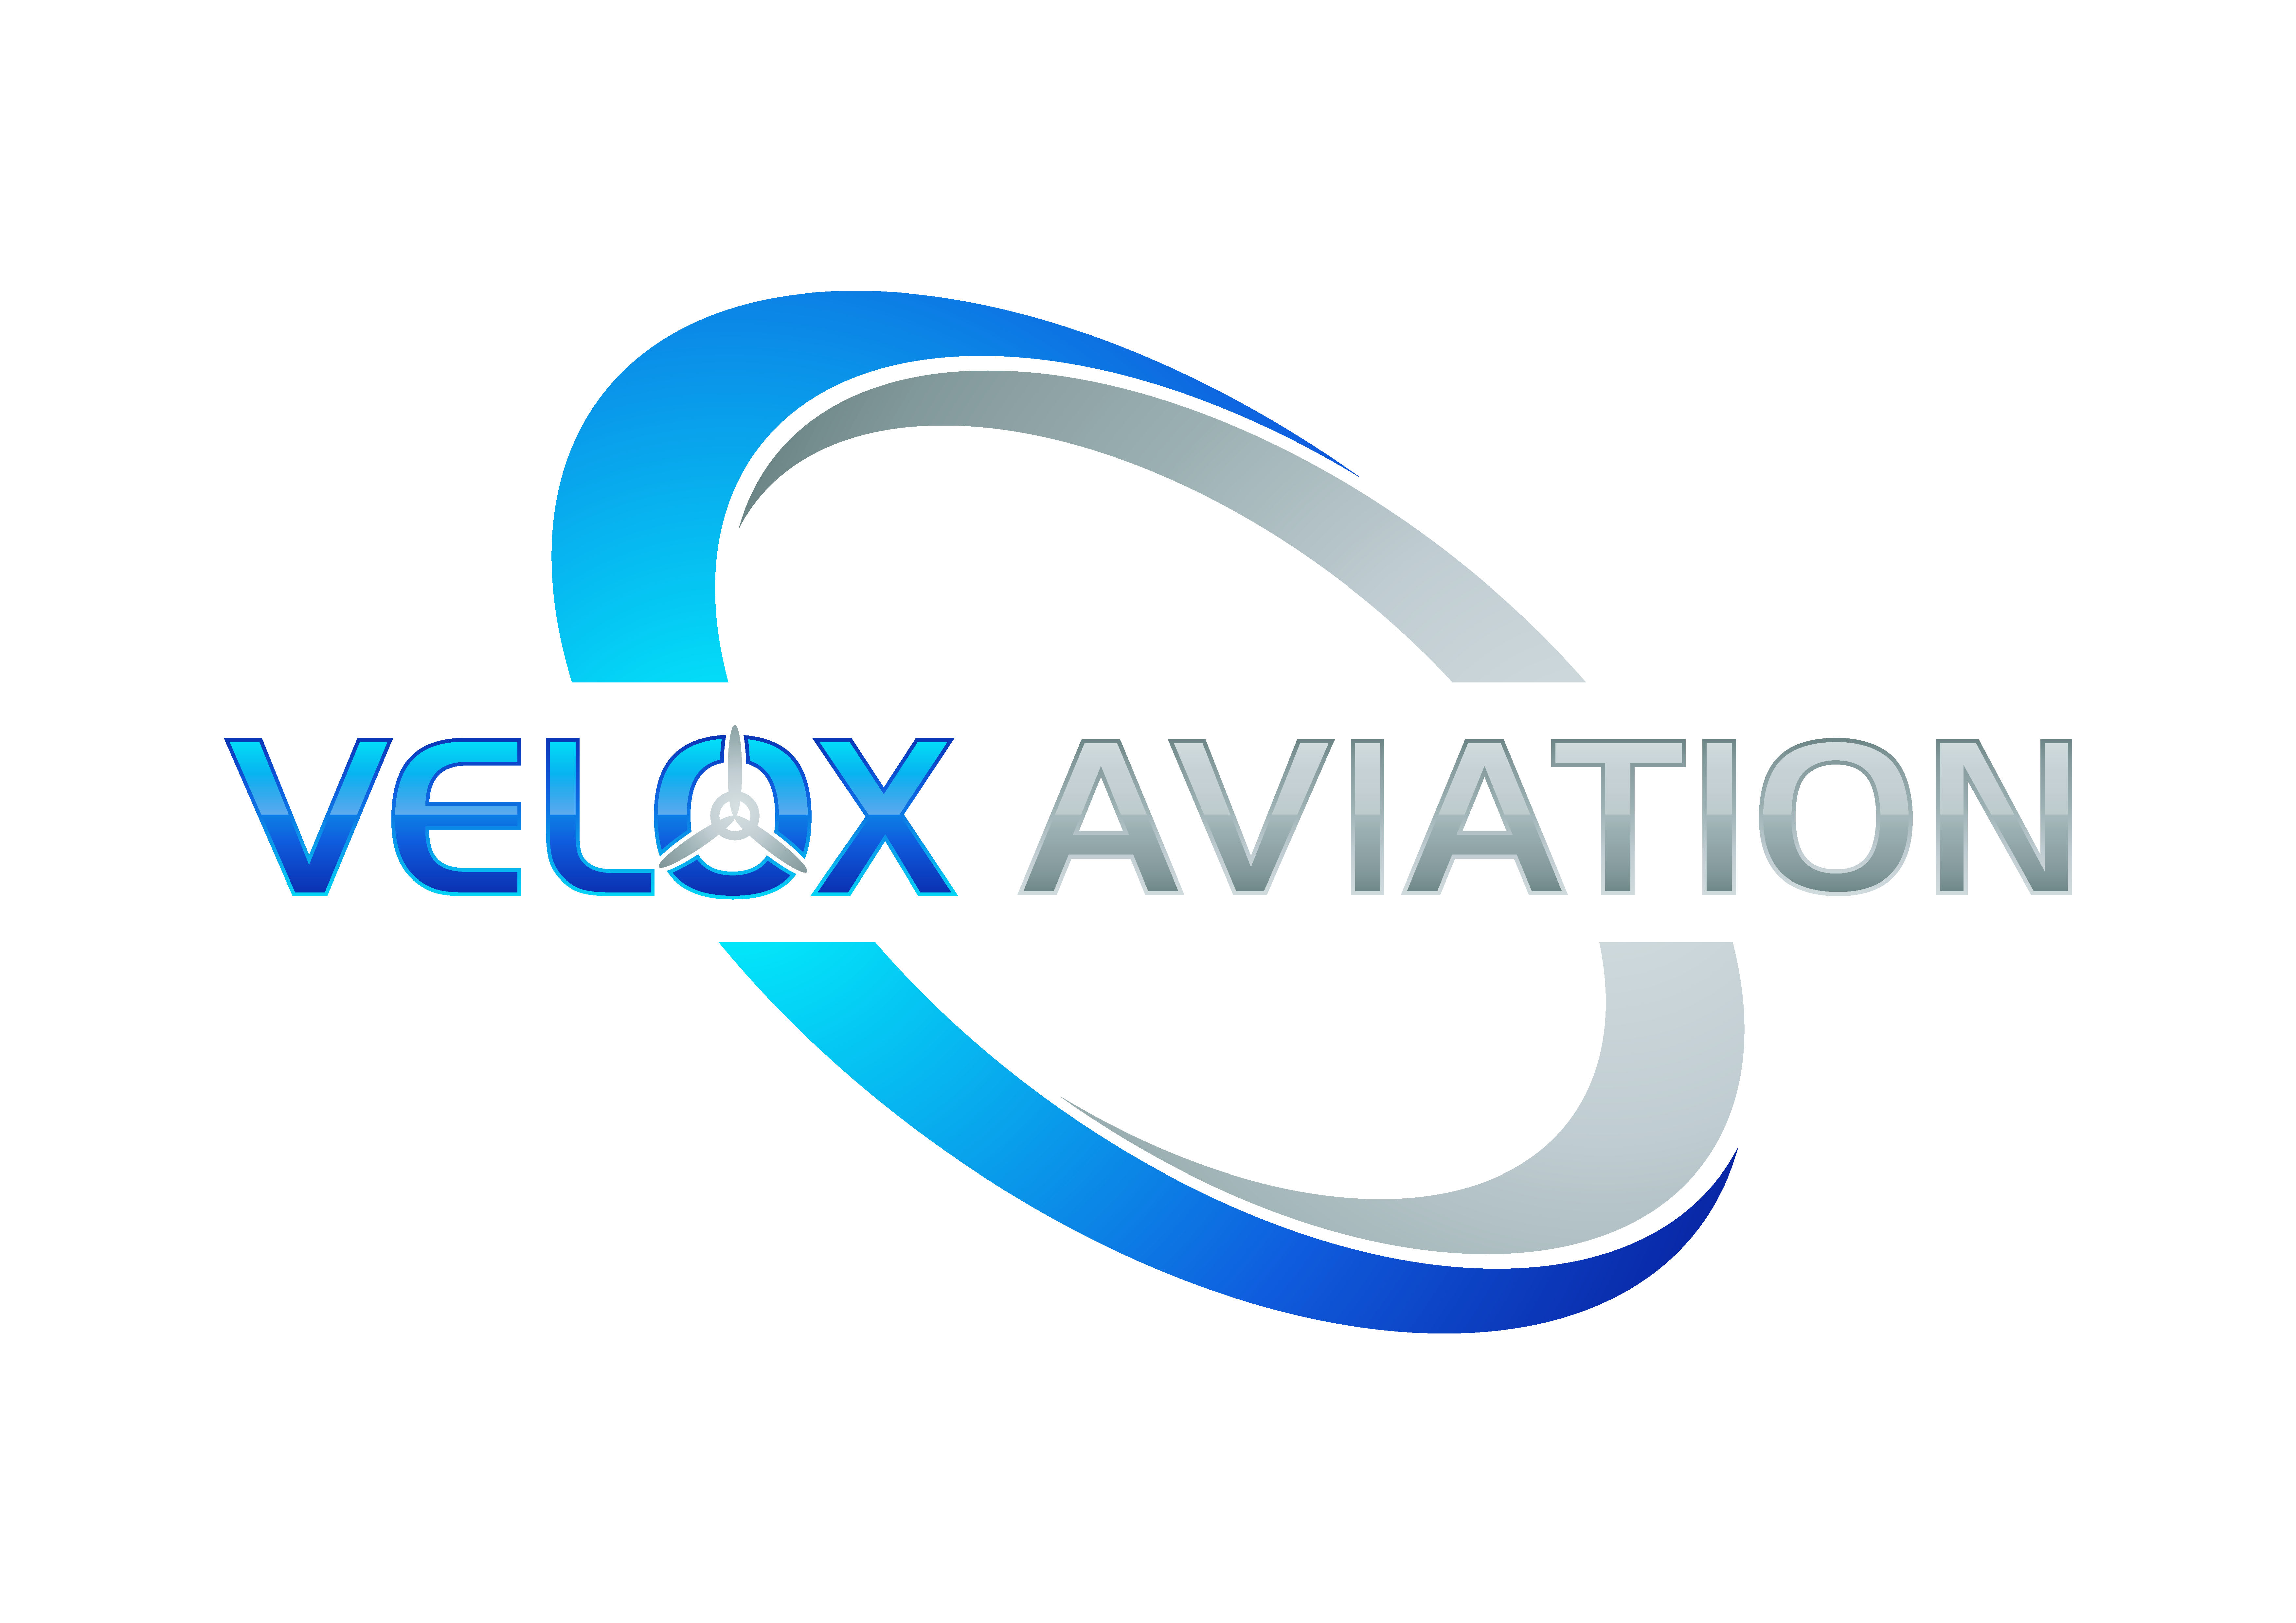 Velox Aviation